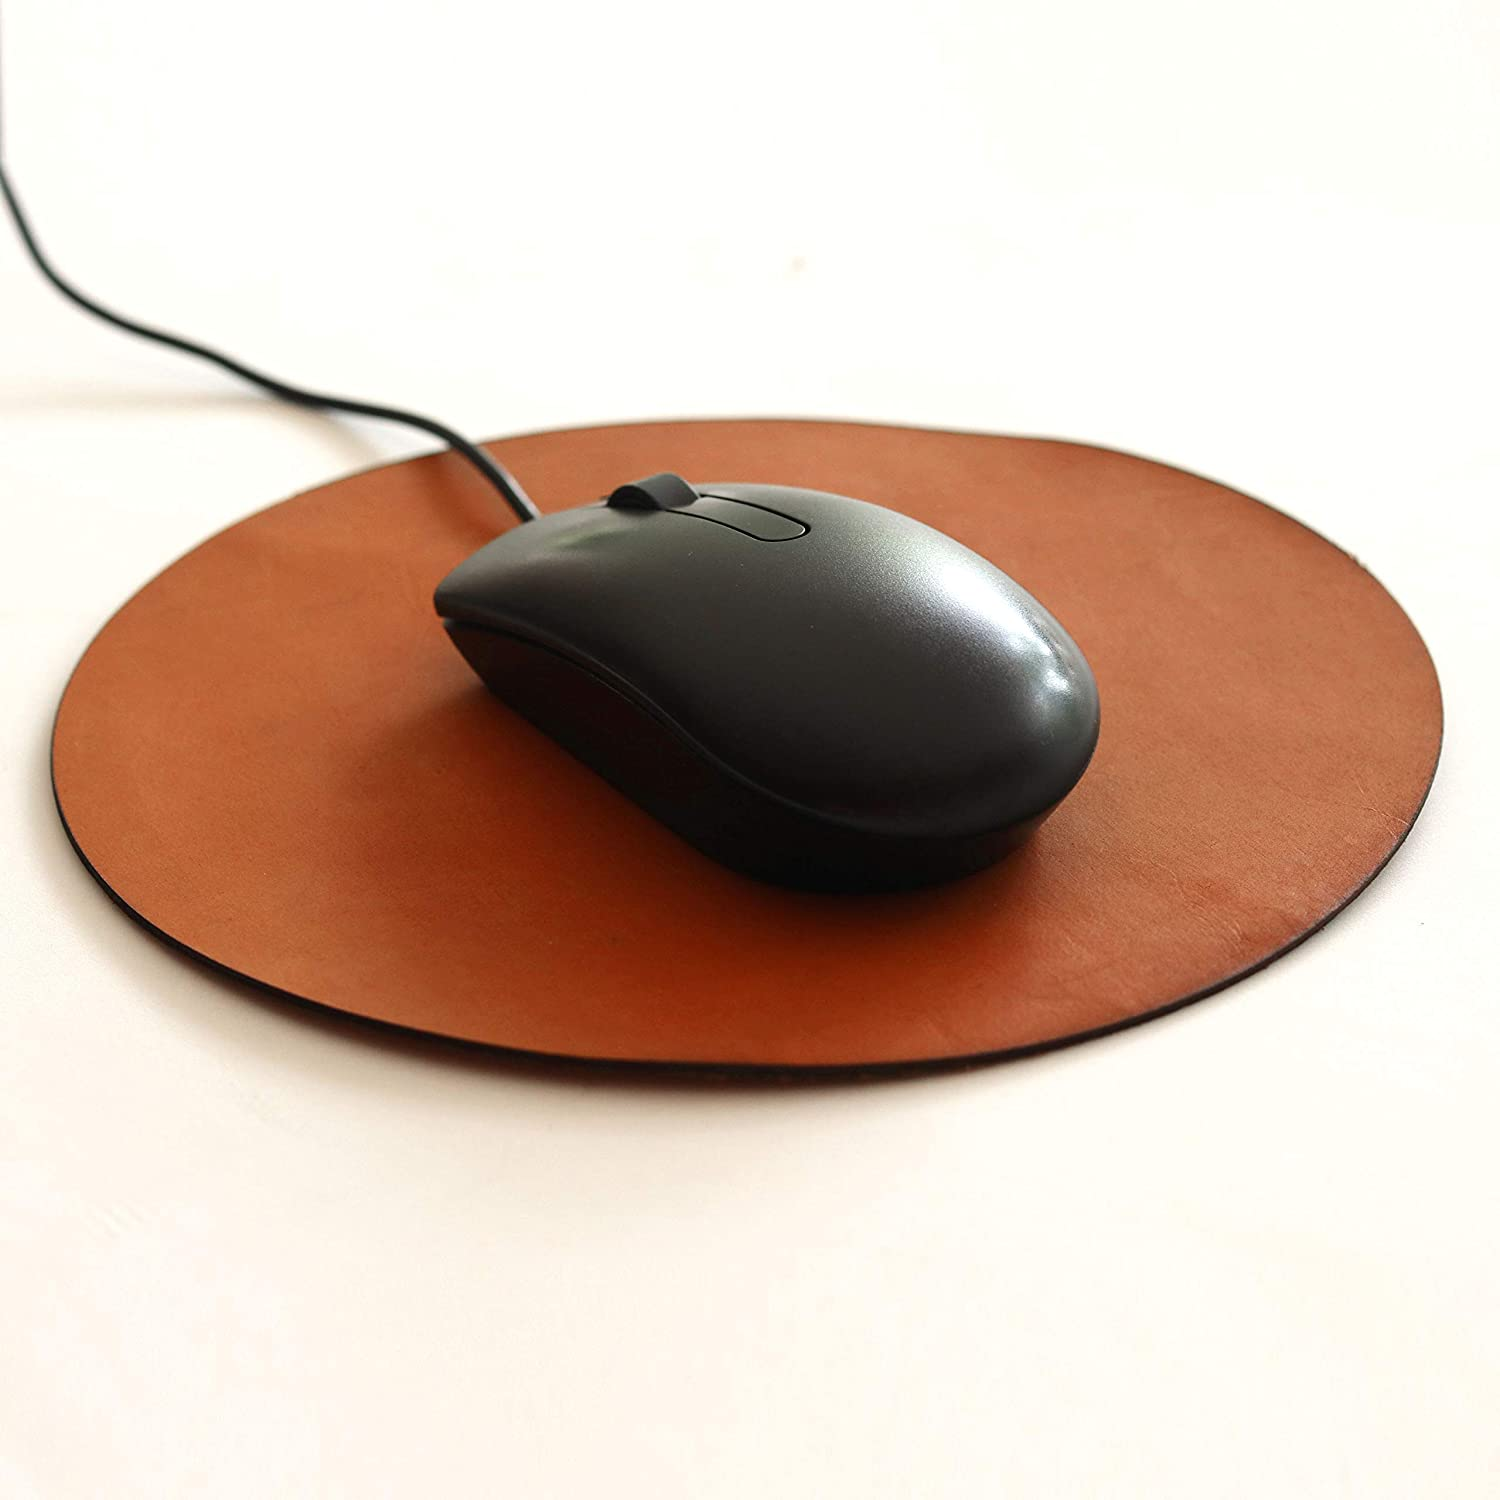 Mouse Pad - Vegetable Tan Leather Mouse Pads for Computer /Laptop / Office Home Desk Accessories - Office Corporate Gift -Christmas / Coworker   Gift   WFH Work from Home Gift   Round Mouse Pad 8 Inch